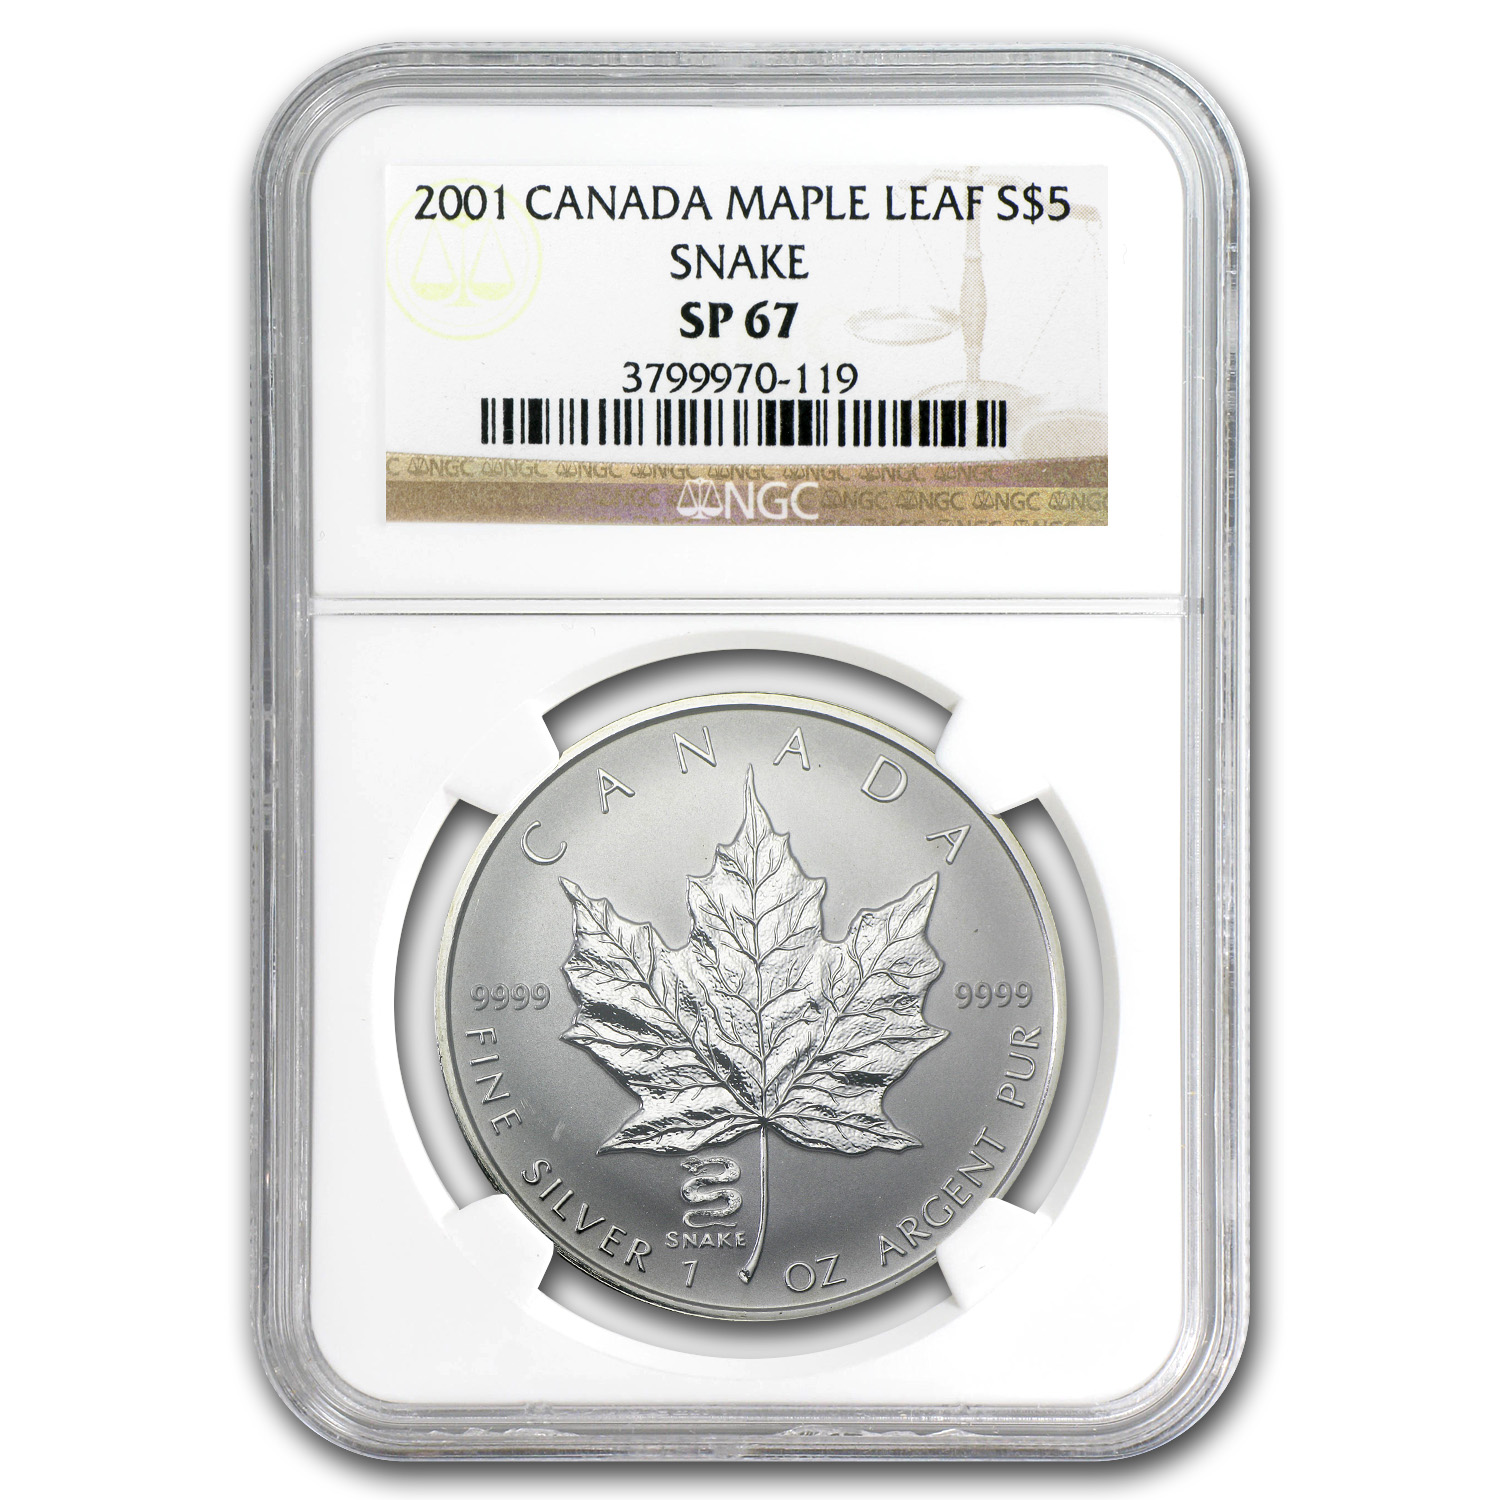 2001 1 oz Silver Canadian Maple Leaf Snake Privy - SP-67 NGC